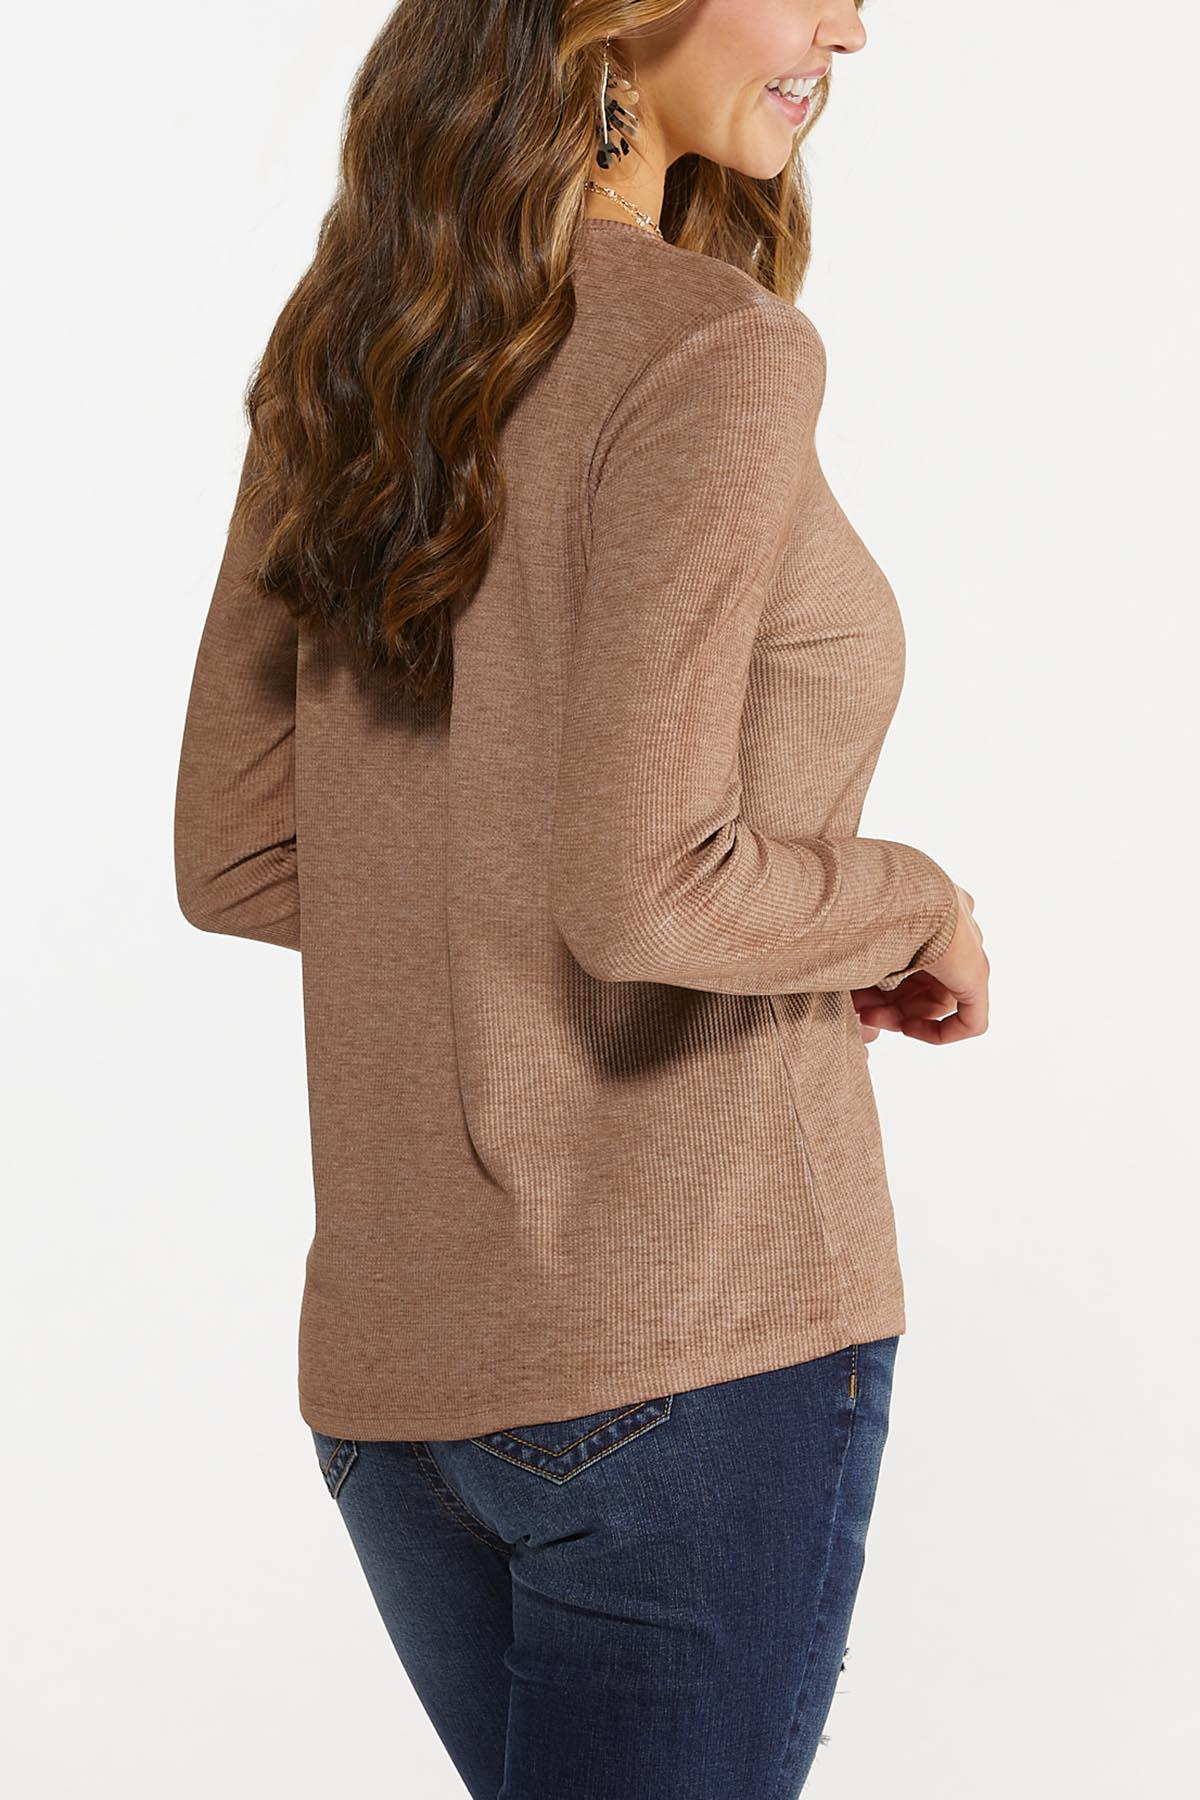 Plus Size Humble And Kind Waffle Top (Item #44688152)